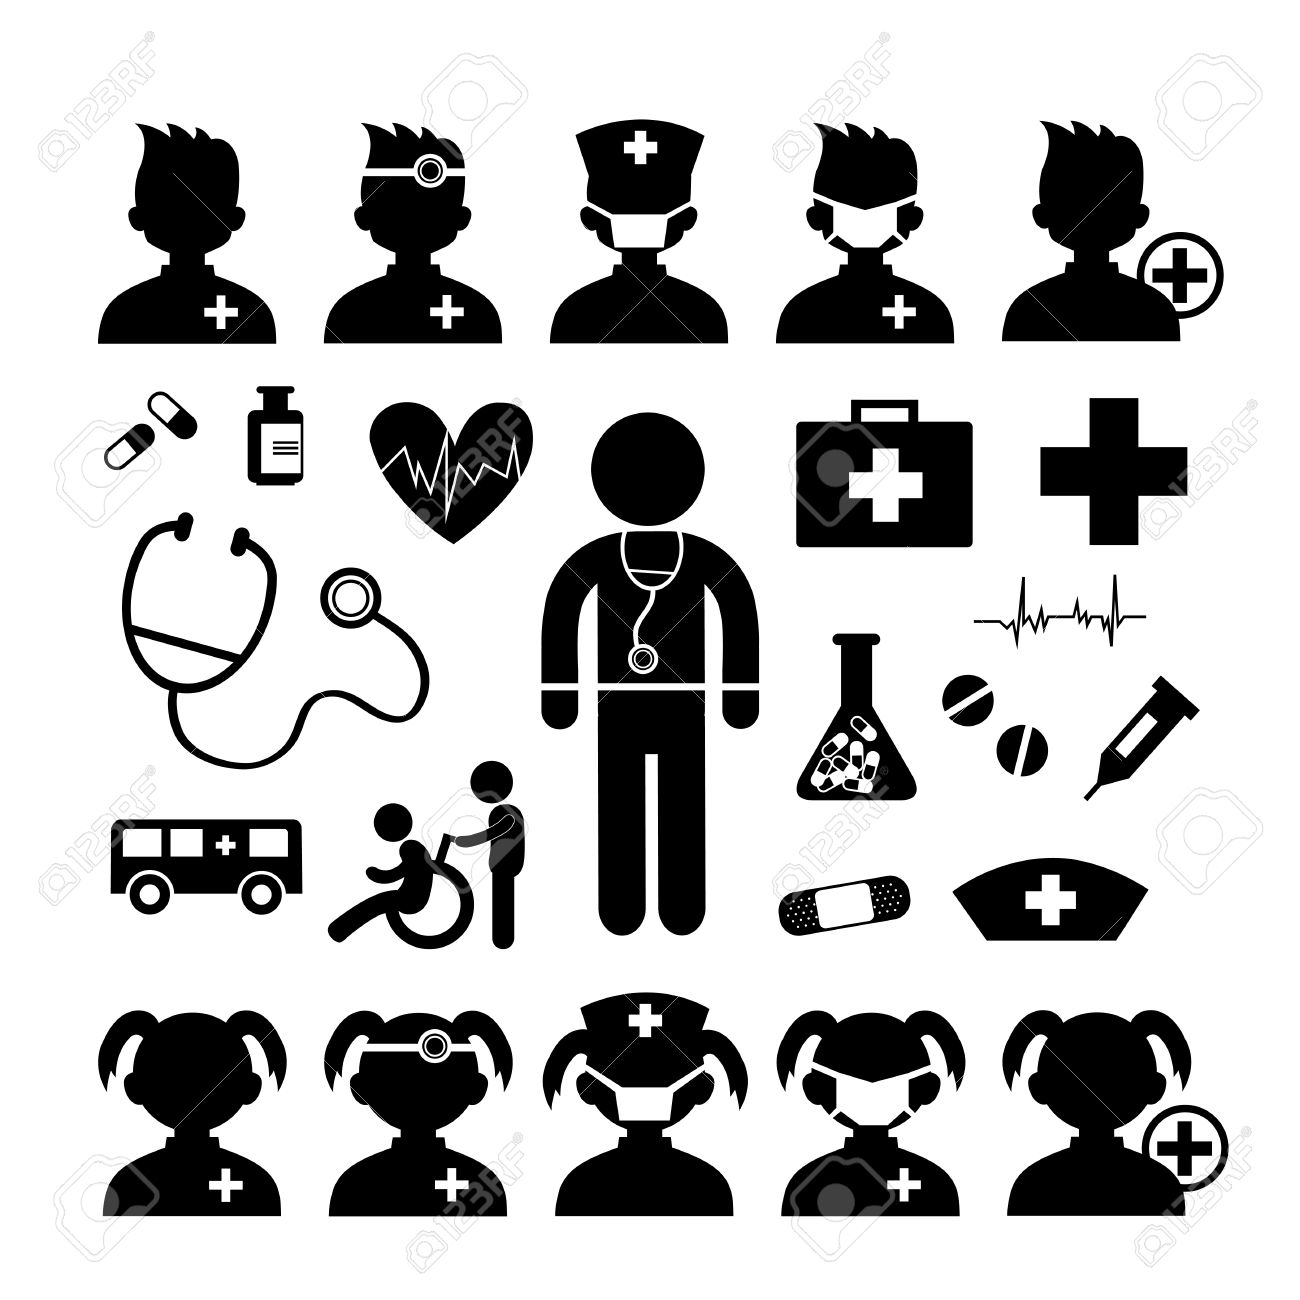 Doctor icon and hospital on white background - 29036260